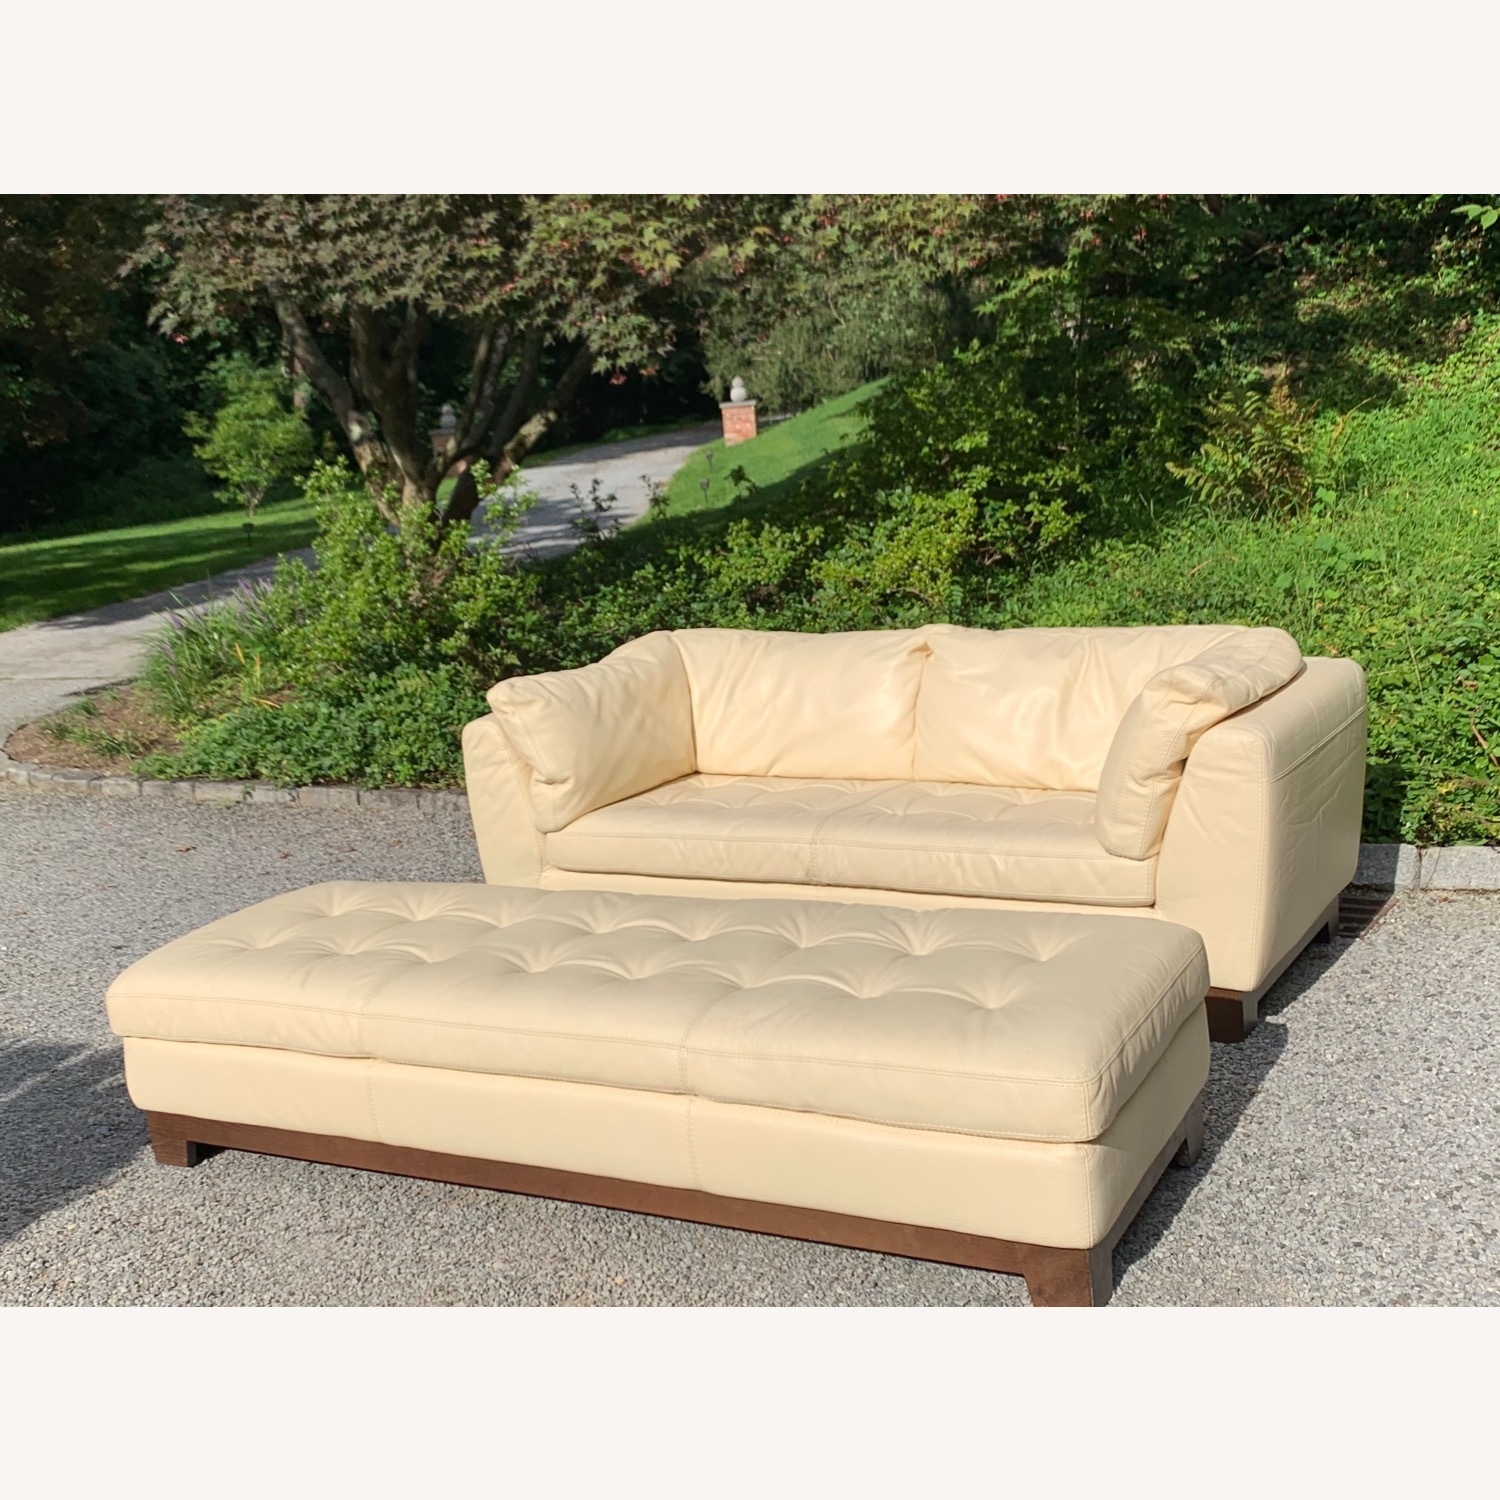 Roche Bobois Ivory Leather 2-Seater Sofa - image-0